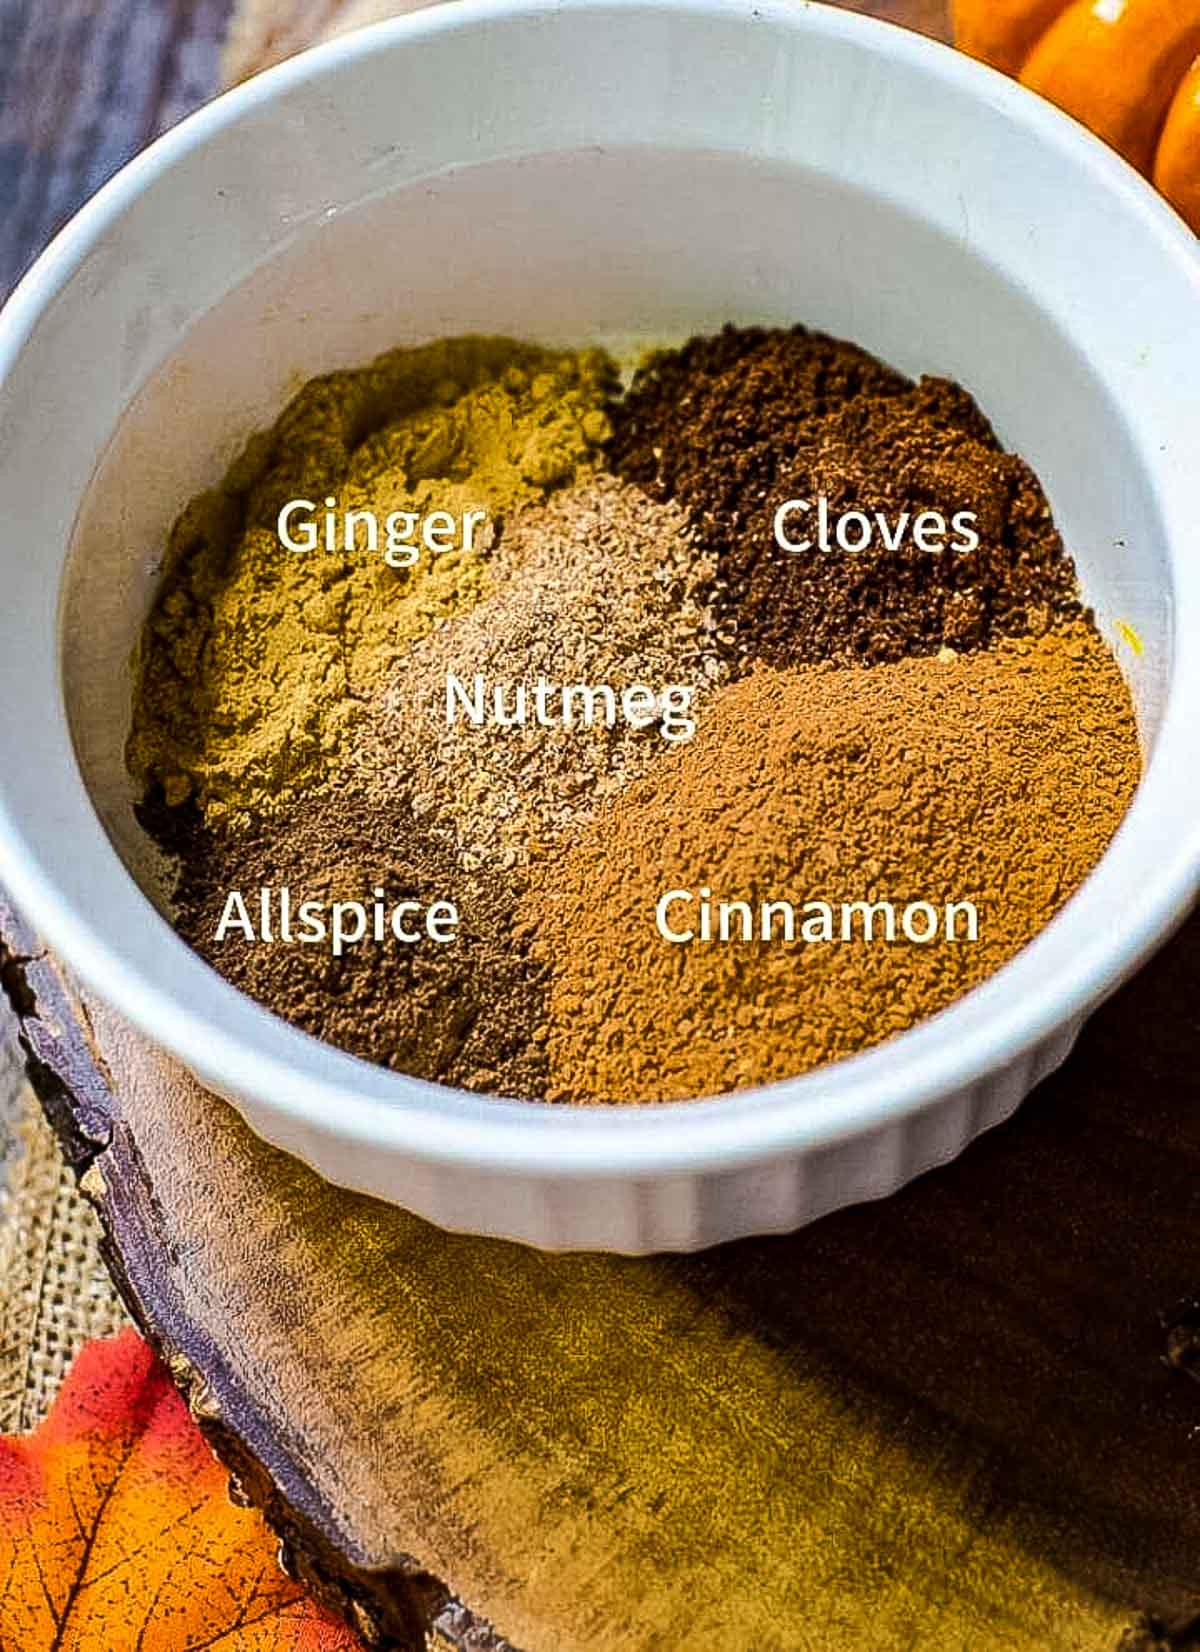 Ground spices next to each other in a bowl. Each spice is labeled.